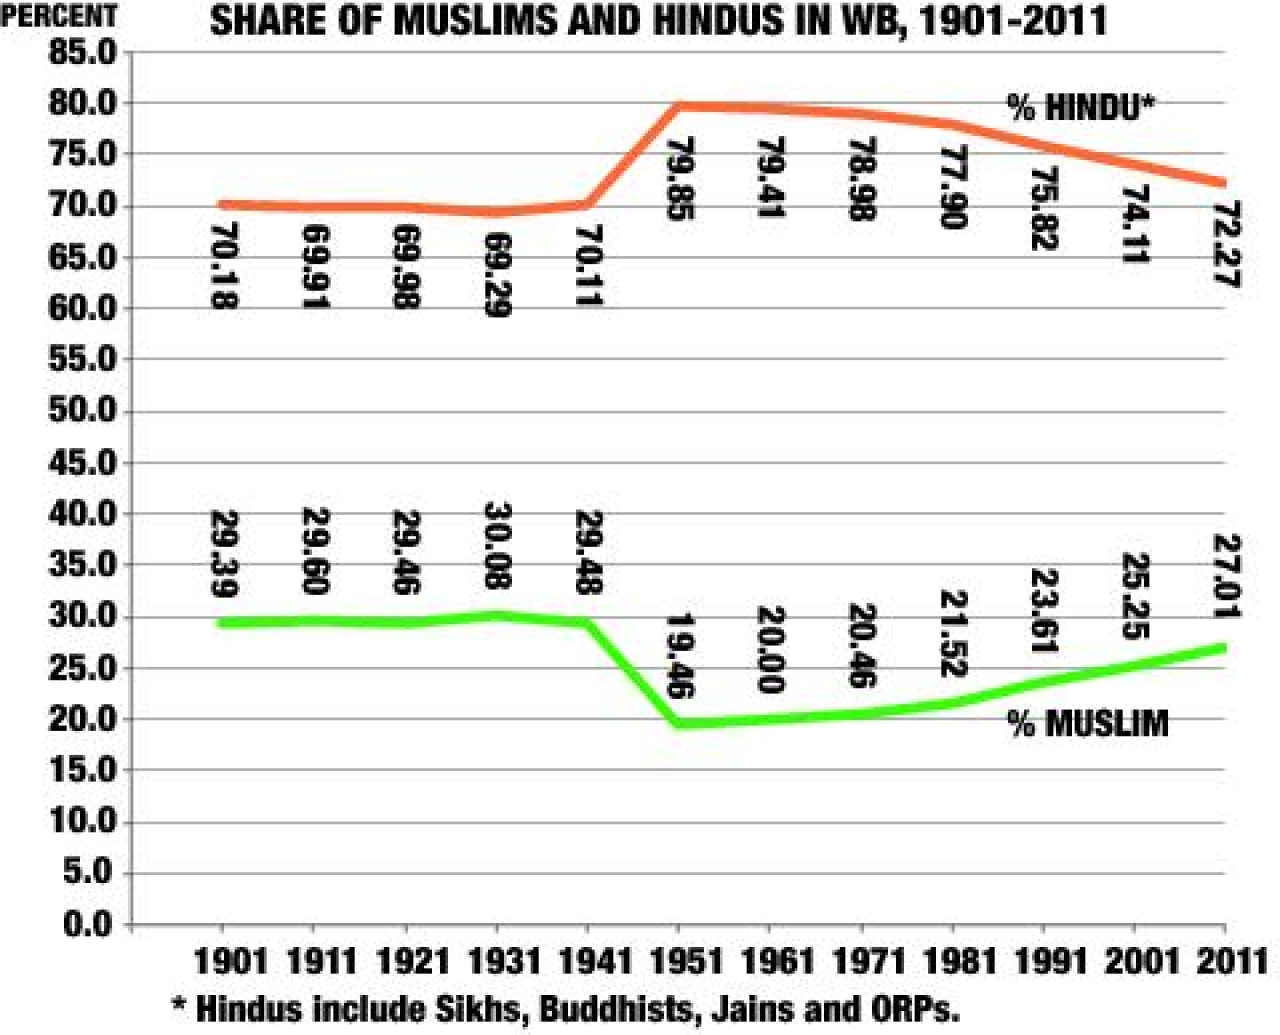 Share of Muslims and Hindus in West Bengal.